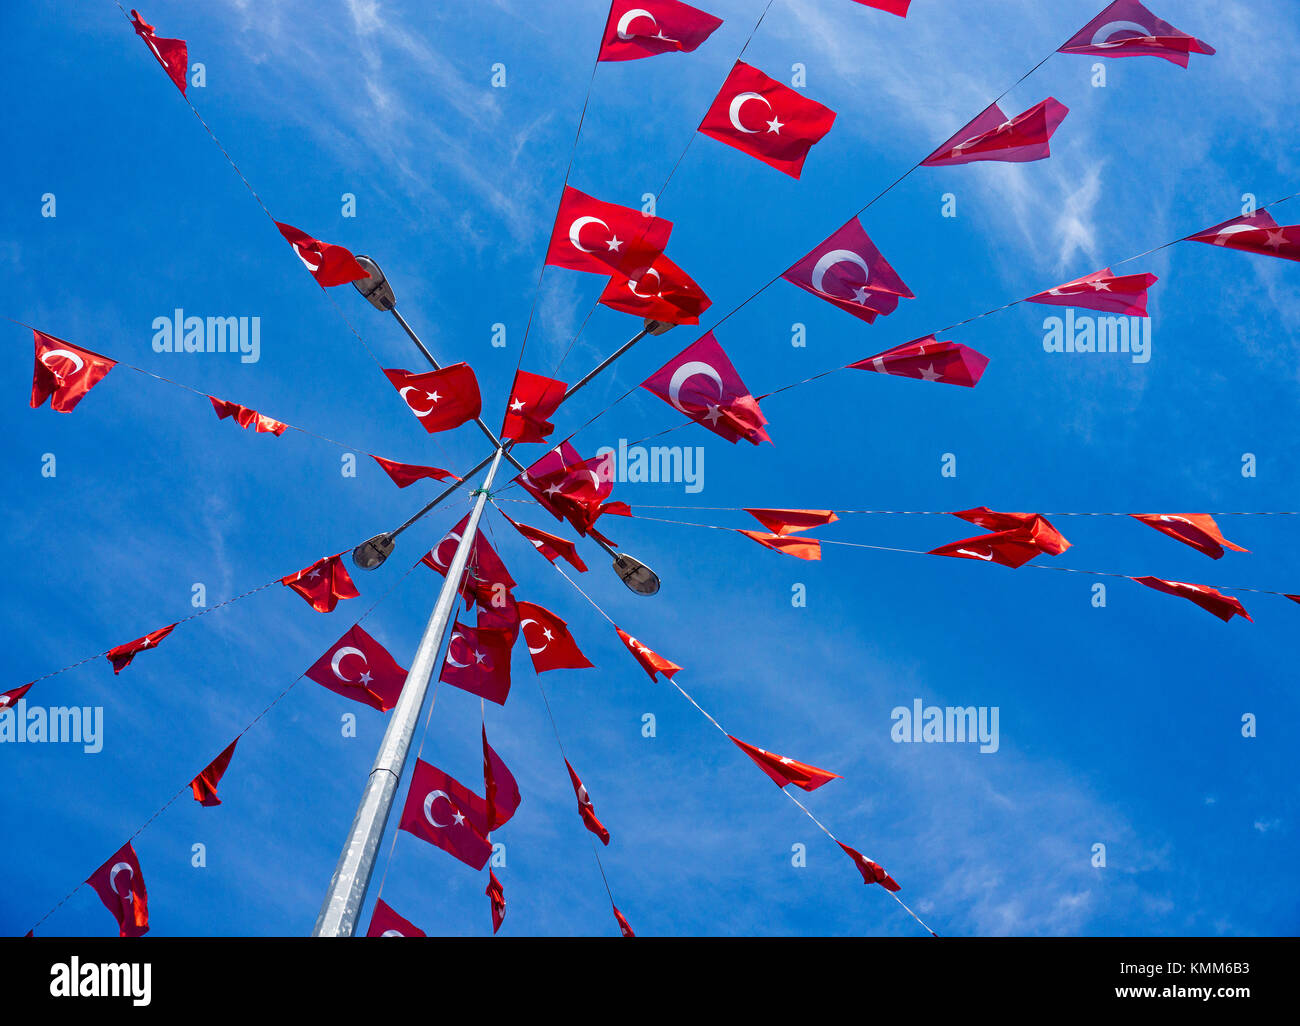 Mast with small turkish national flags against blue sky, Kaleici, old town of Antalya, turkish riviera, Turkey - Stock Image